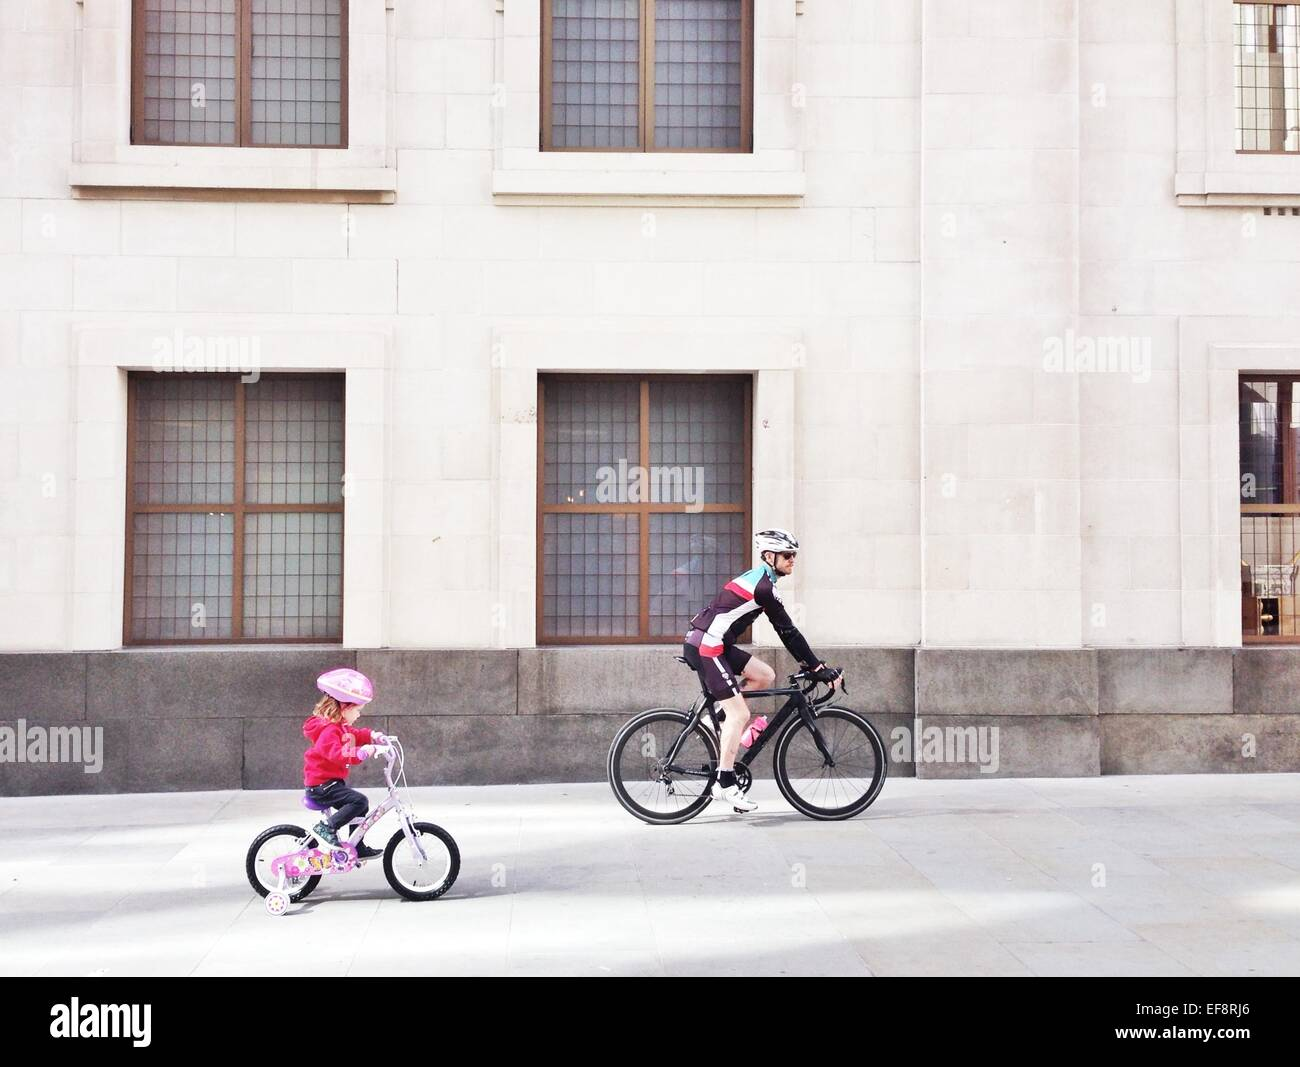 UK, England, London, Father and daughter cycling past building - Stock Image